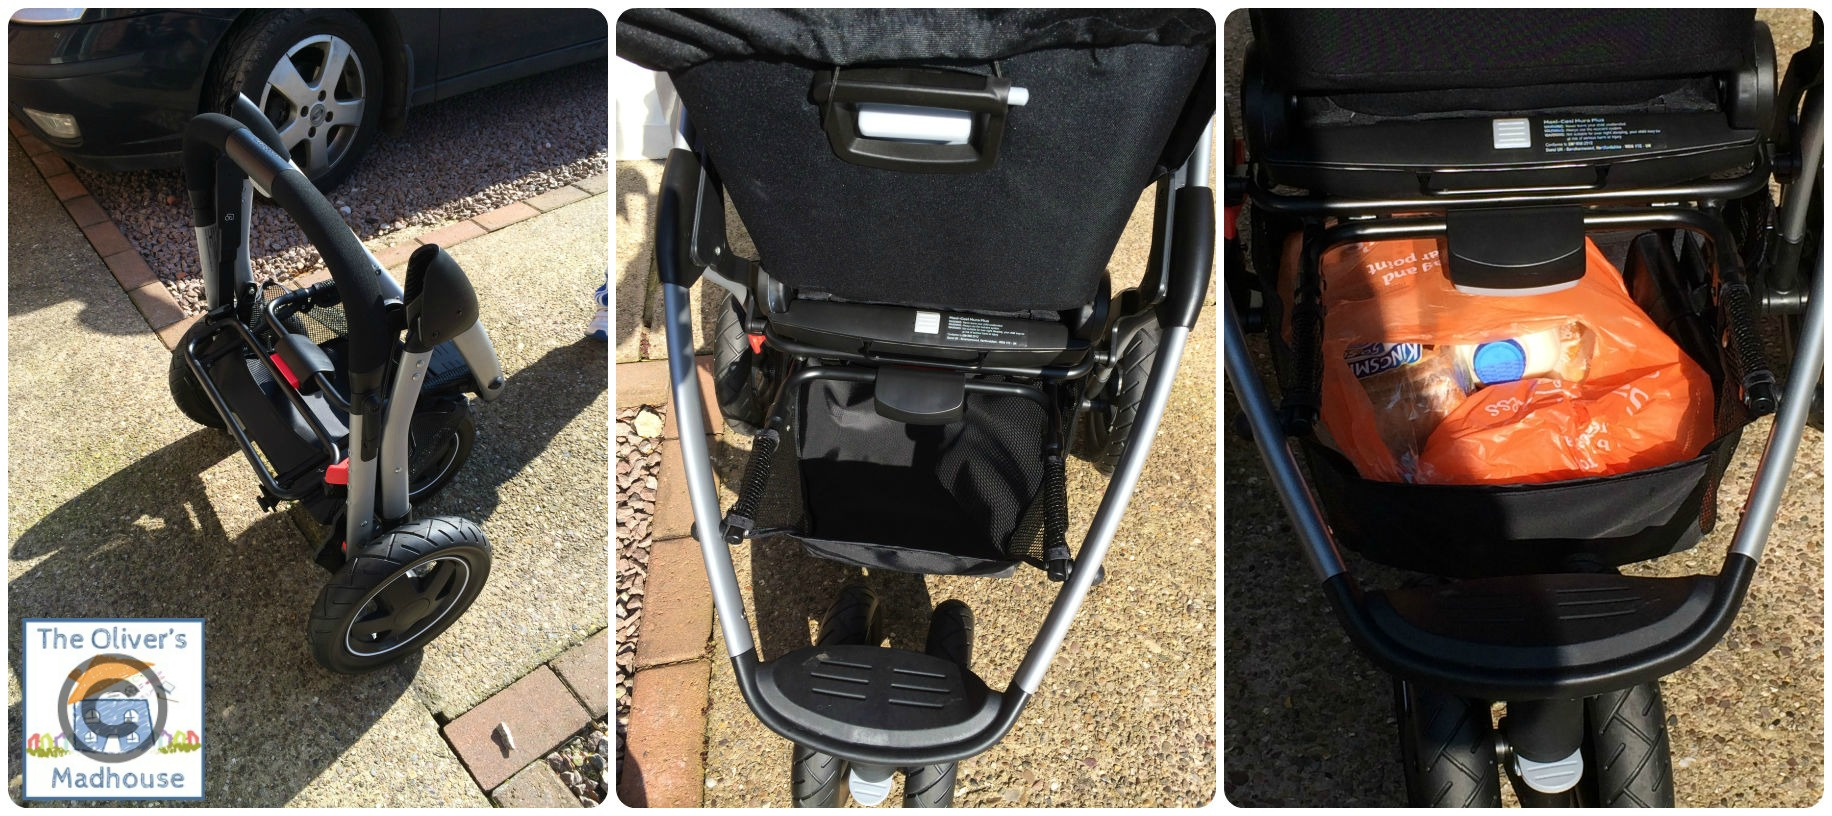 Review: Maxi-Cosi Mura Plus - Out And About The Oliver\\\'s Madhouse